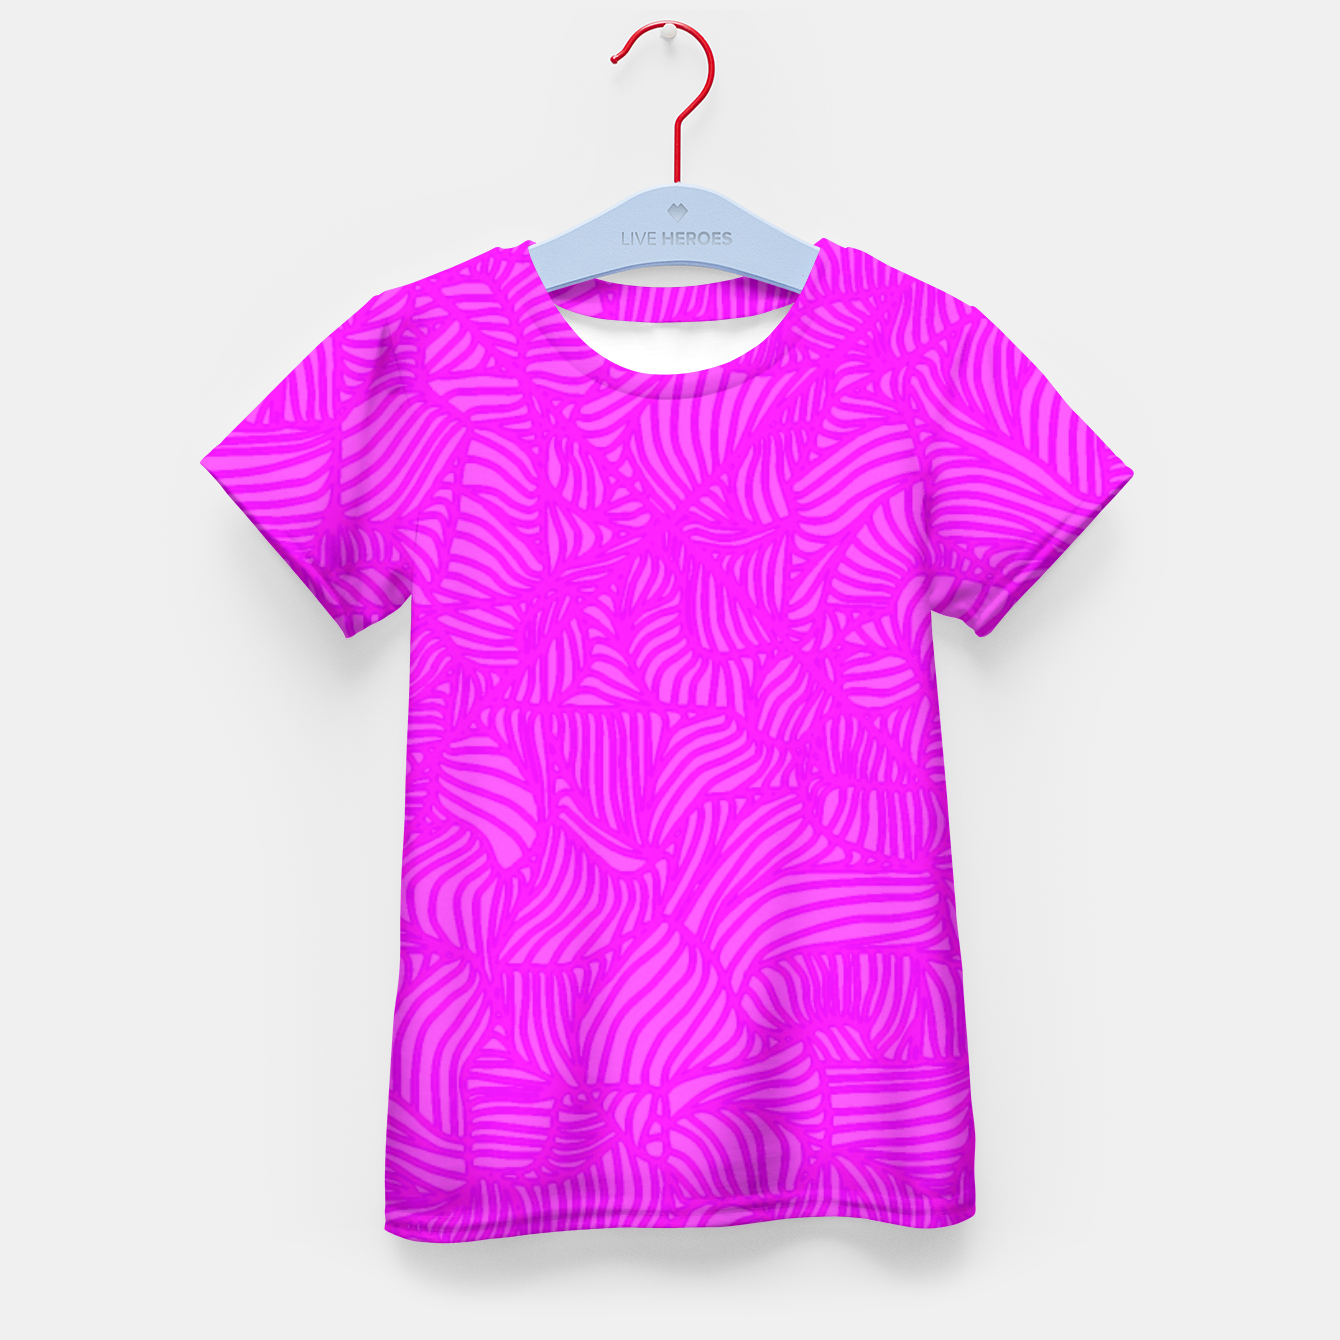 Image of pink Kid's T-shirt - Live Heroes